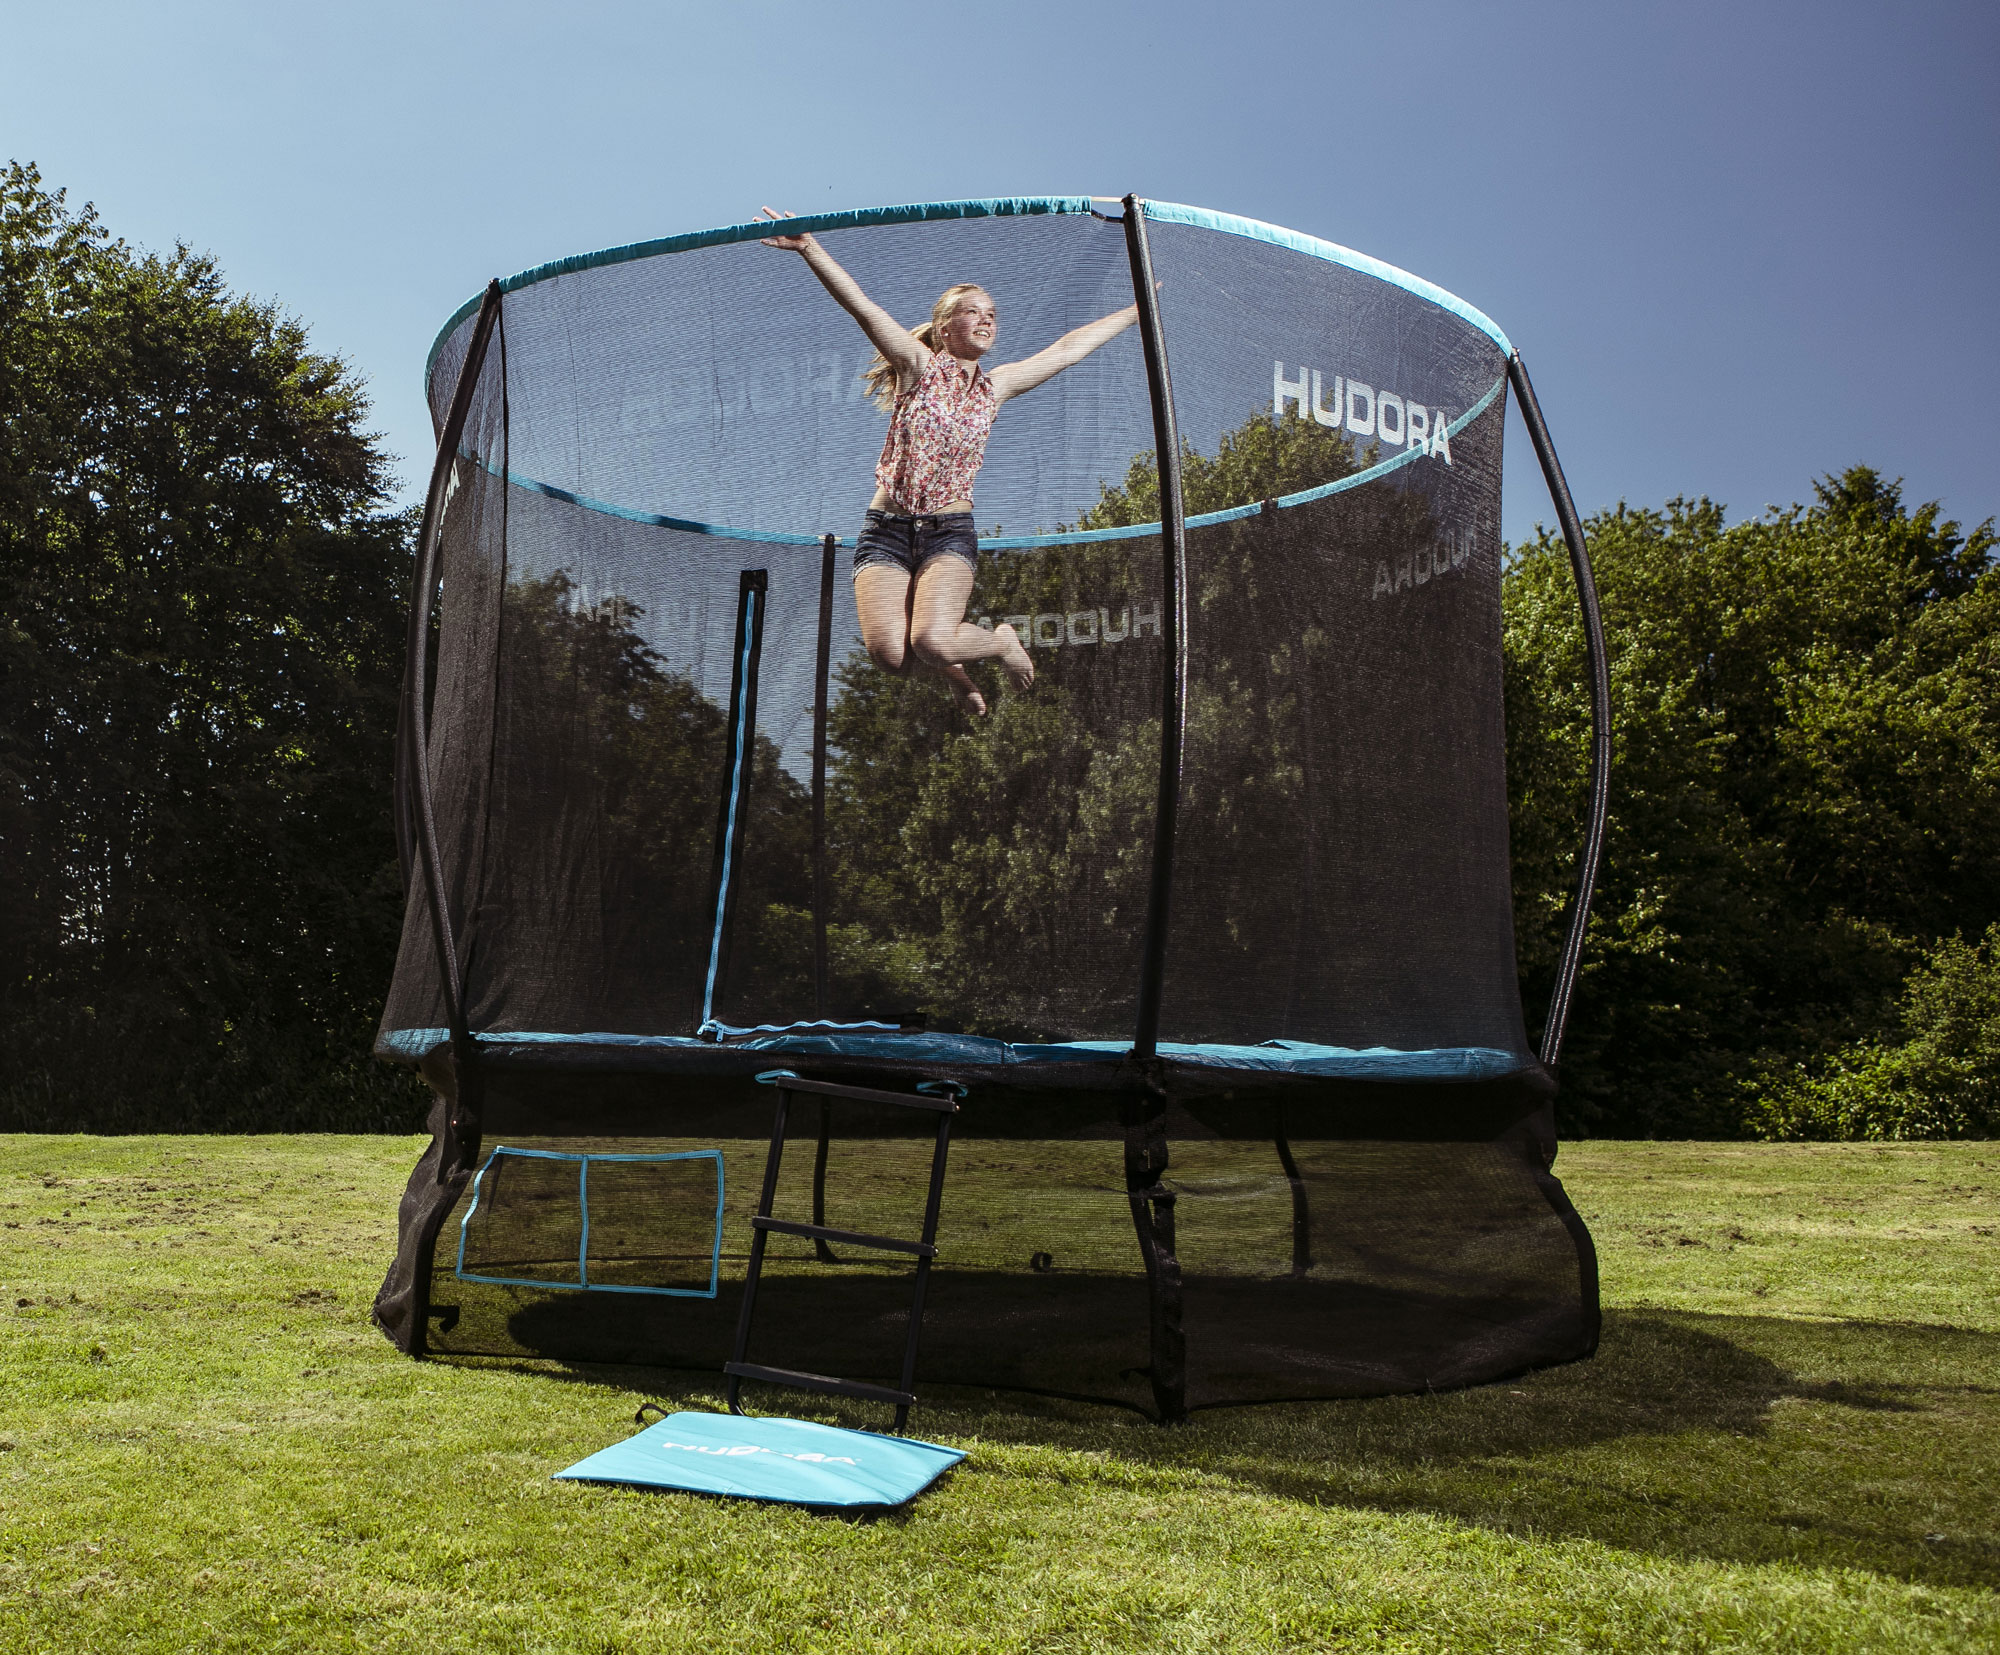 hudora fantastic complete trampolin 300cm bei. Black Bedroom Furniture Sets. Home Design Ideas